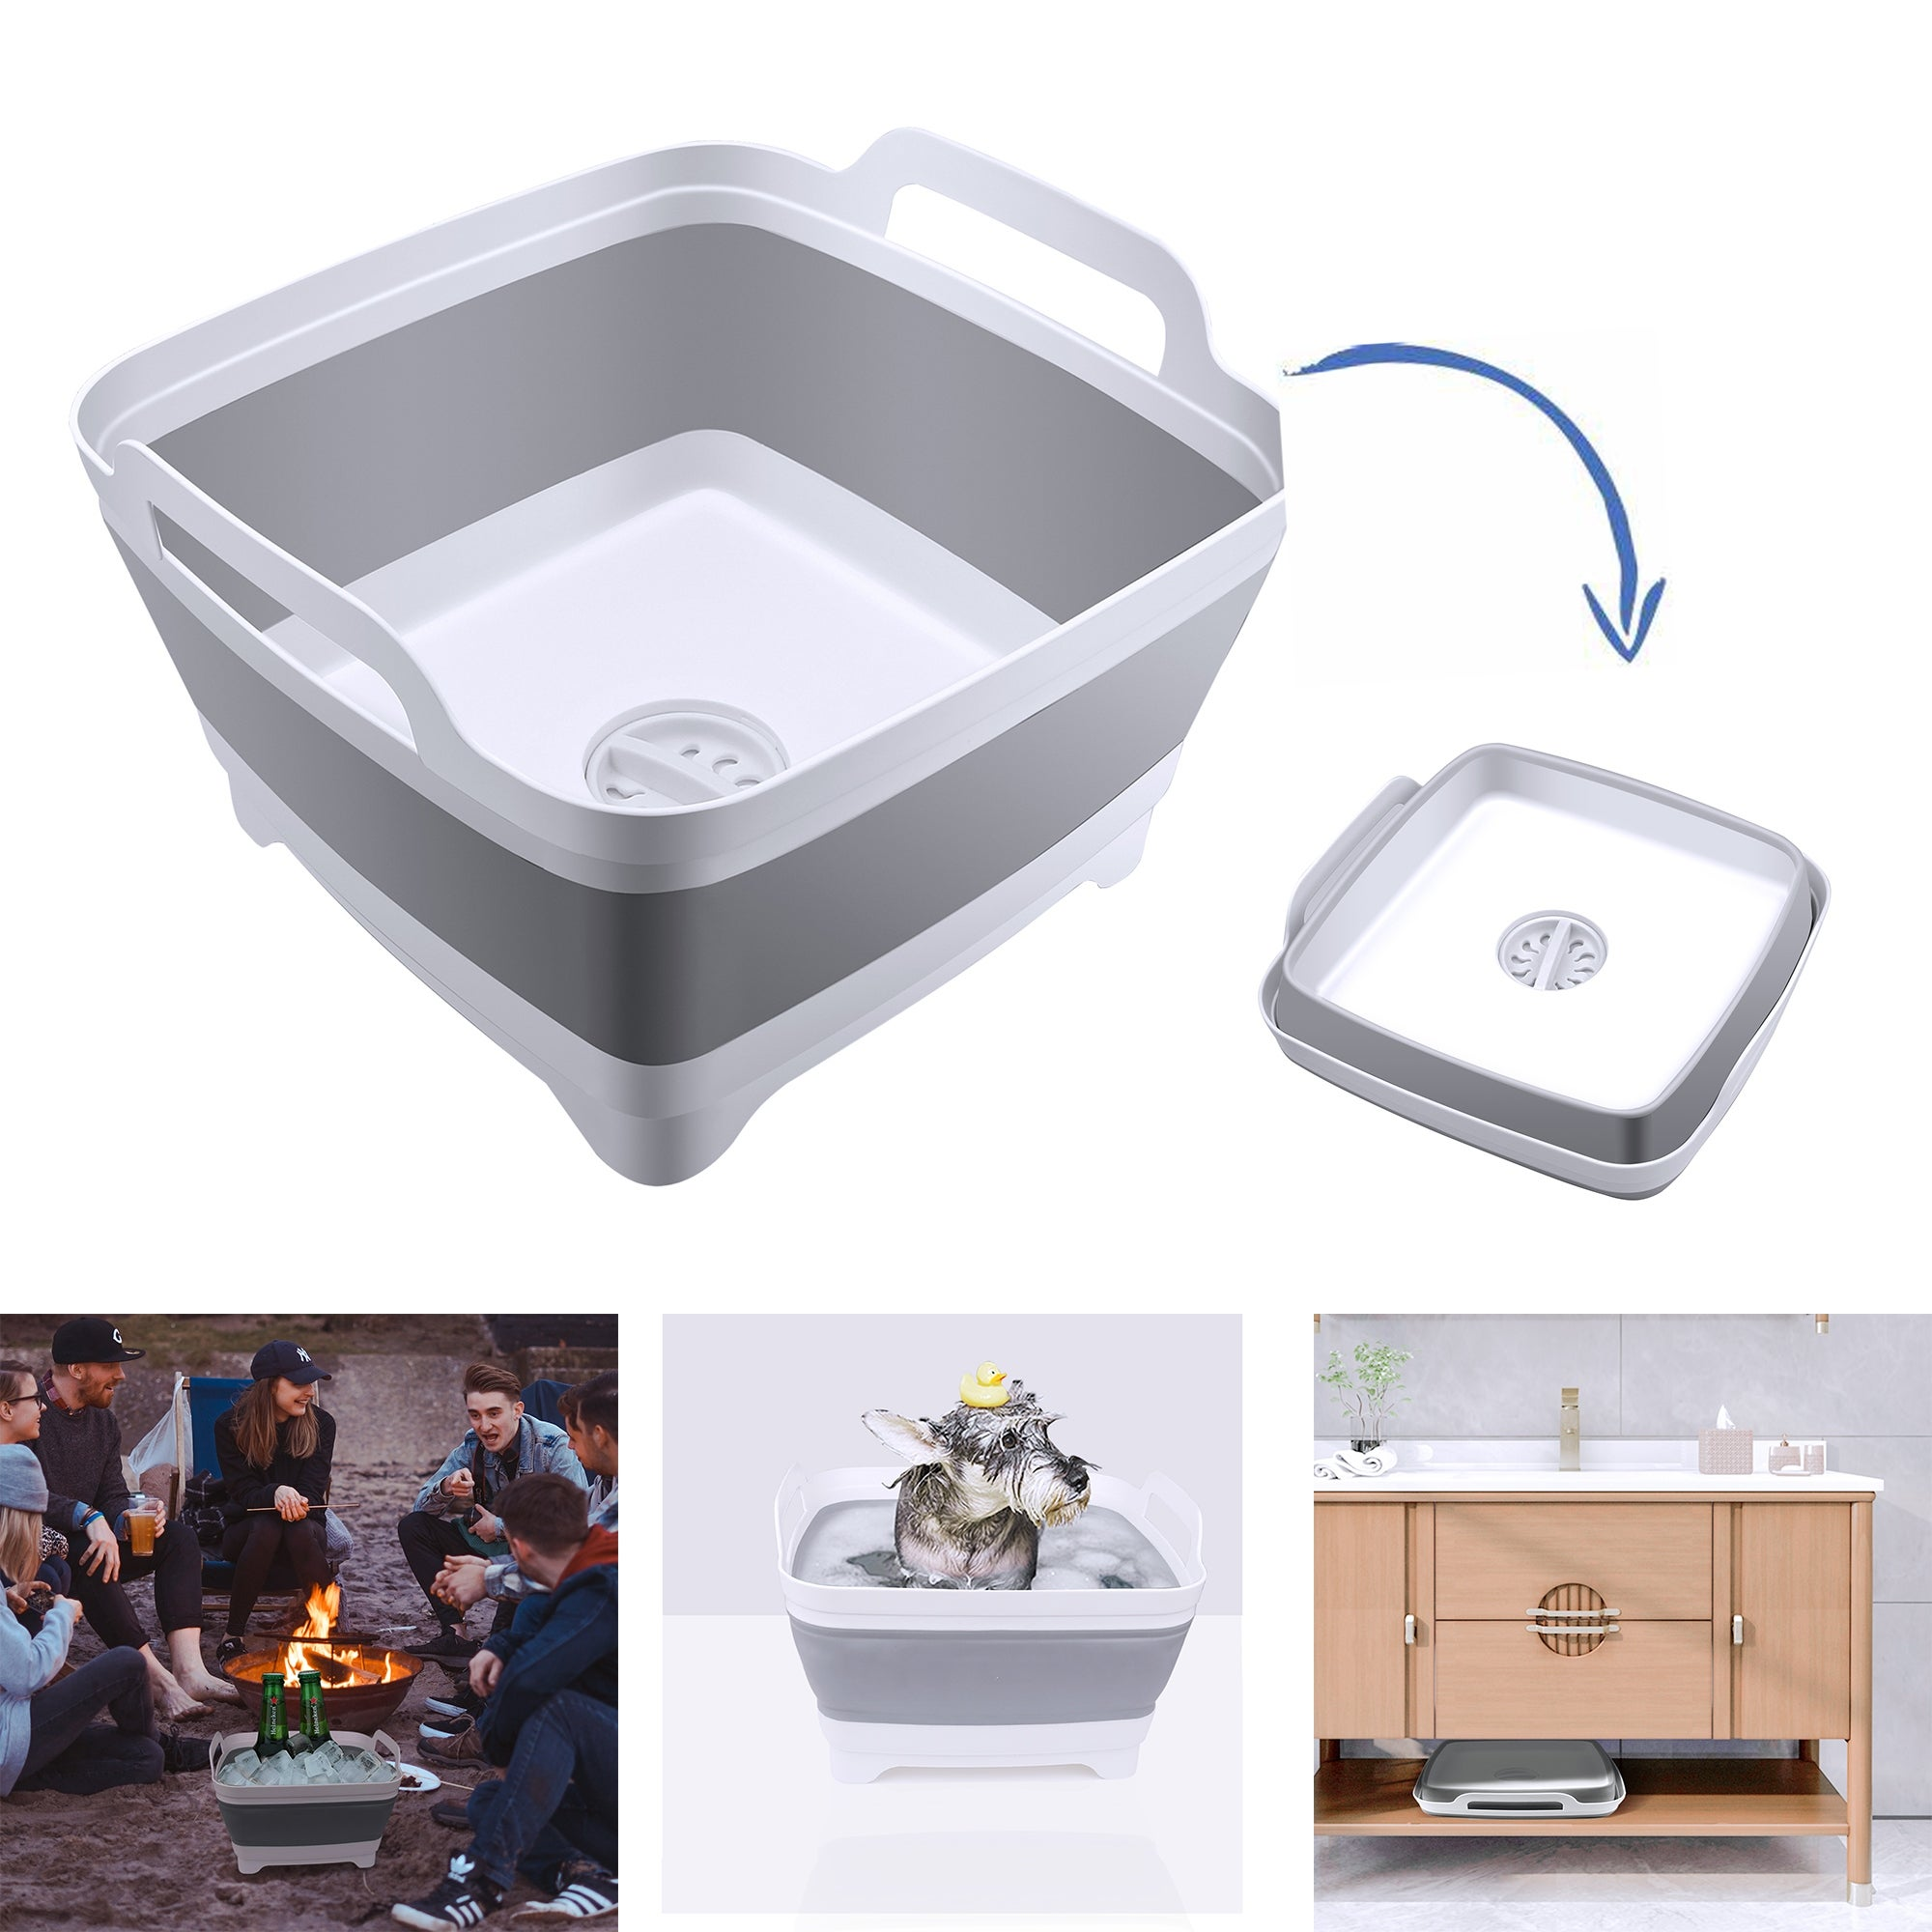 Collapsible Washing Up Bowl Folding Portable Round Wash Basin Multifunctional Outdoor Camping Hiking Unbreakable Washing Container Outdoor Activities 1pc